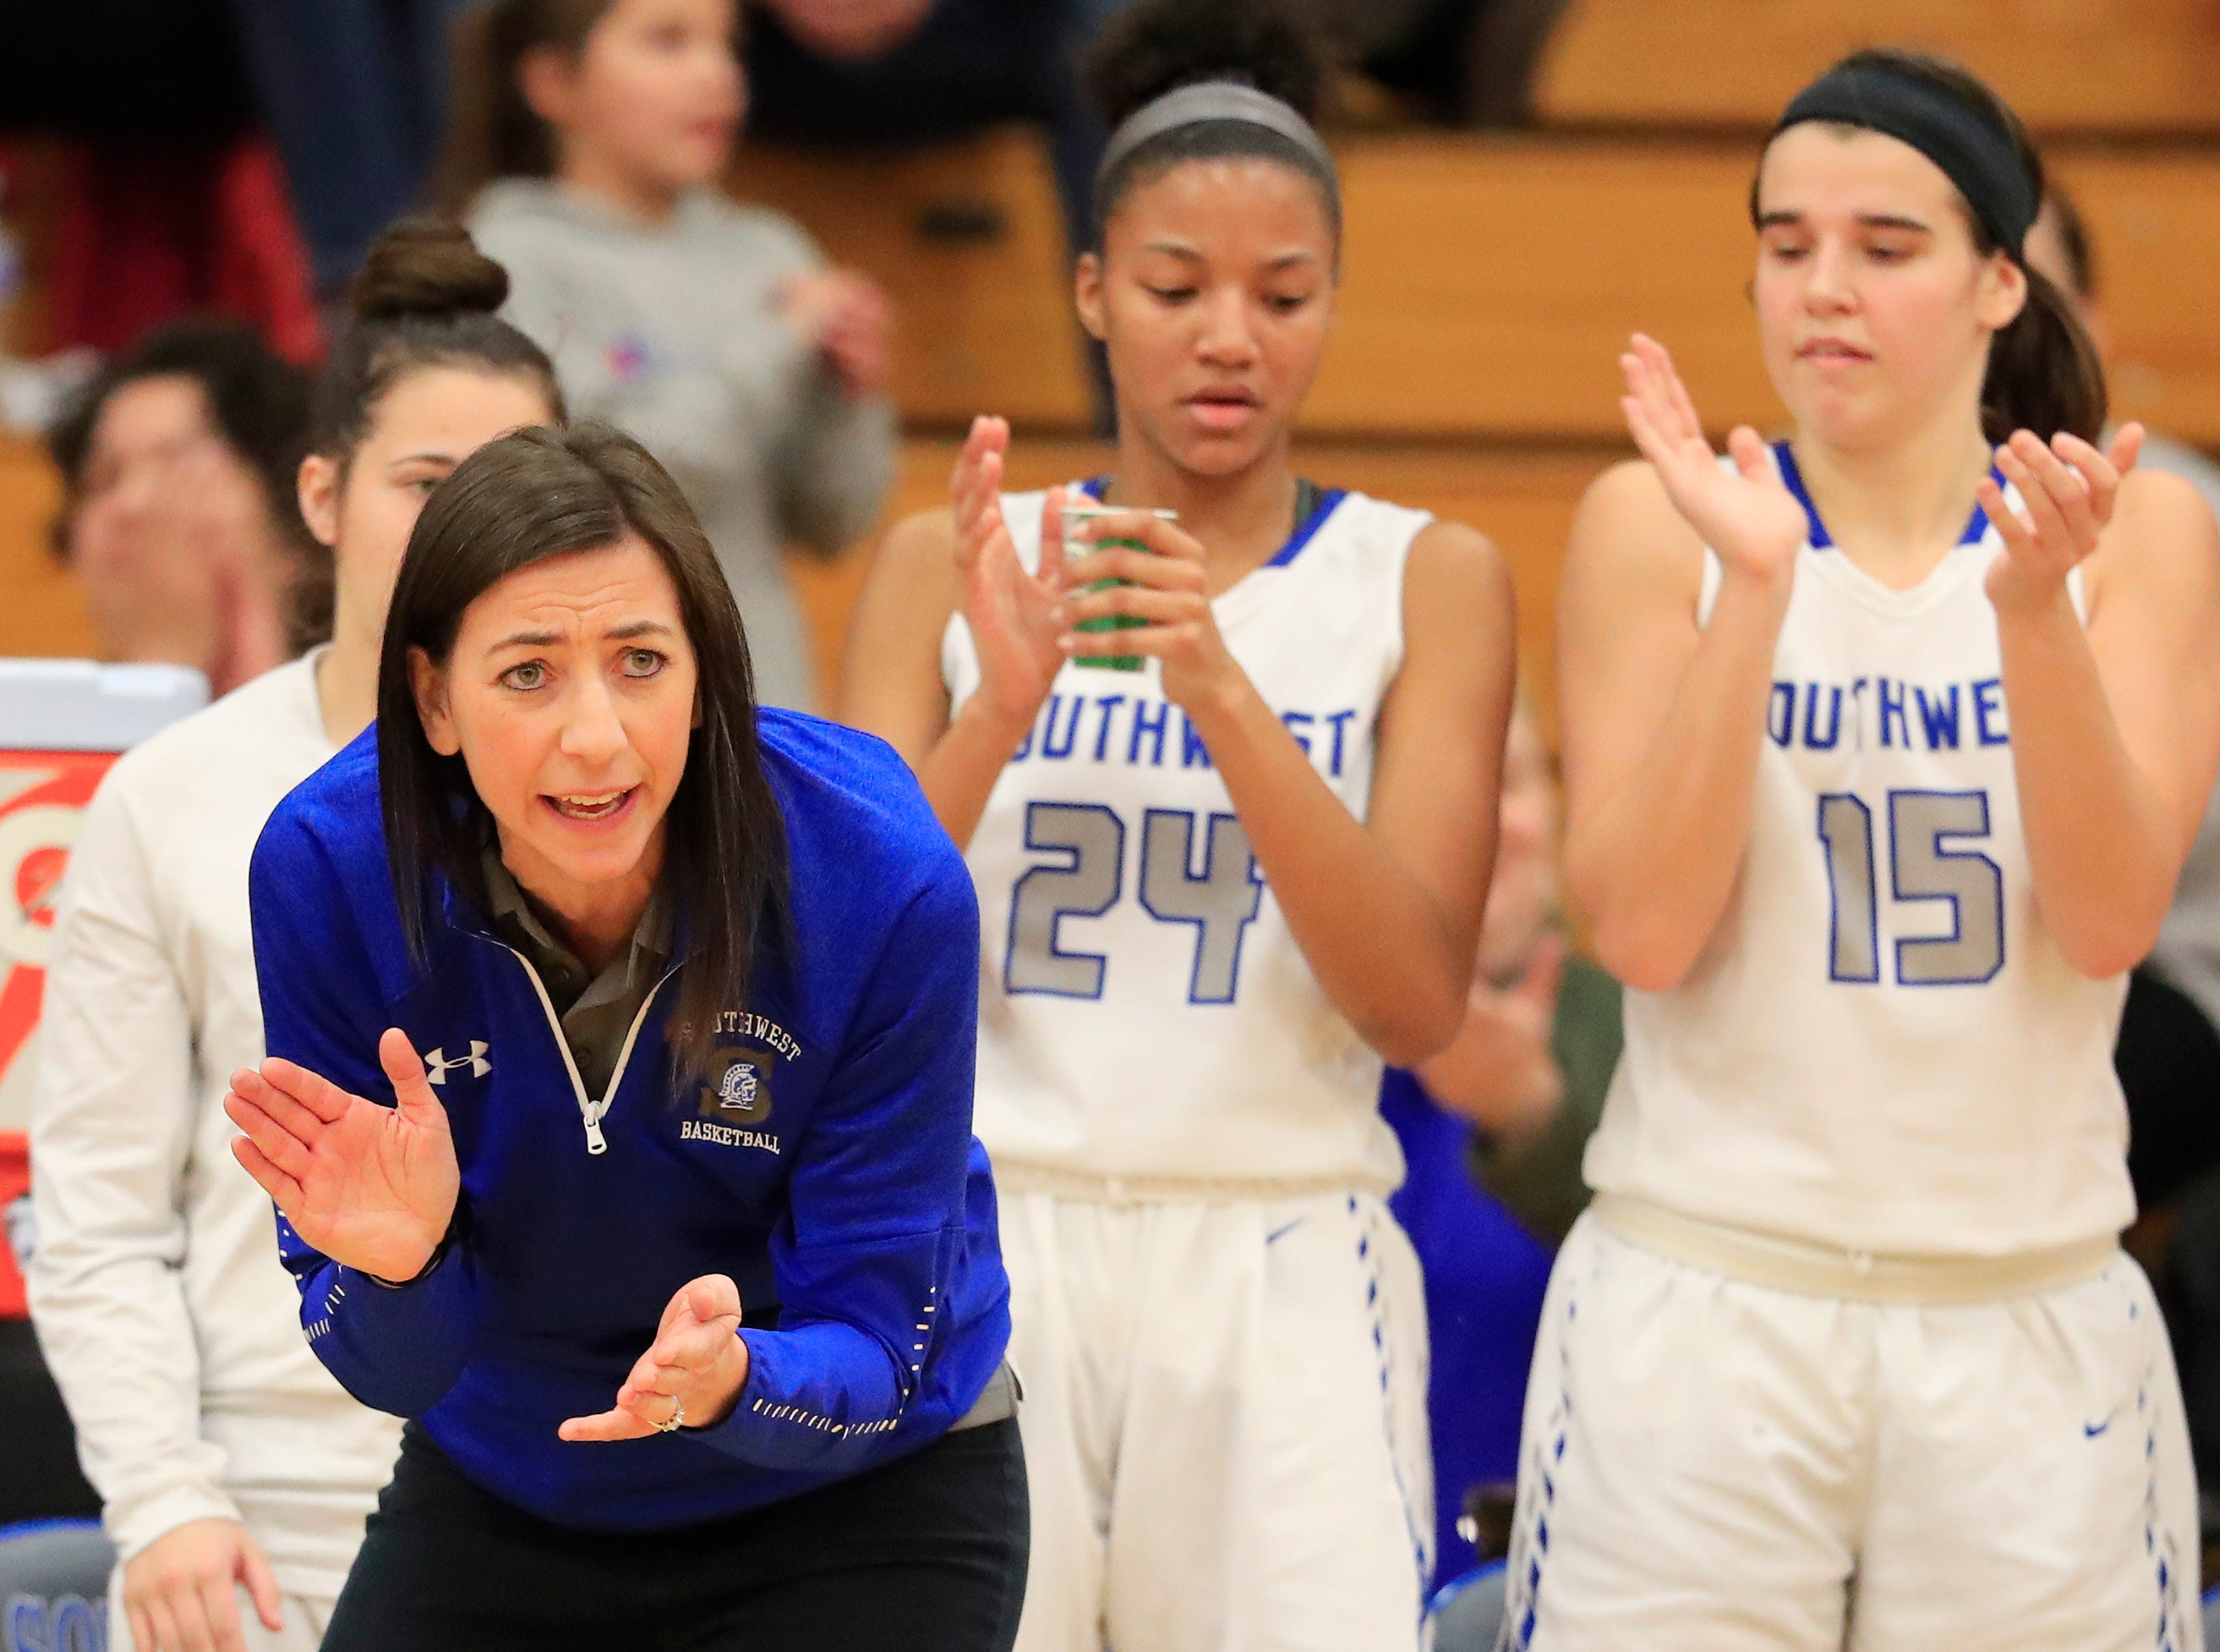 Green Bay Southwest head coach Erin Barkley reacts during a girls basketball game at Southwest High School on Tuesday, February 5, 2019 in Green Bay, Wis.